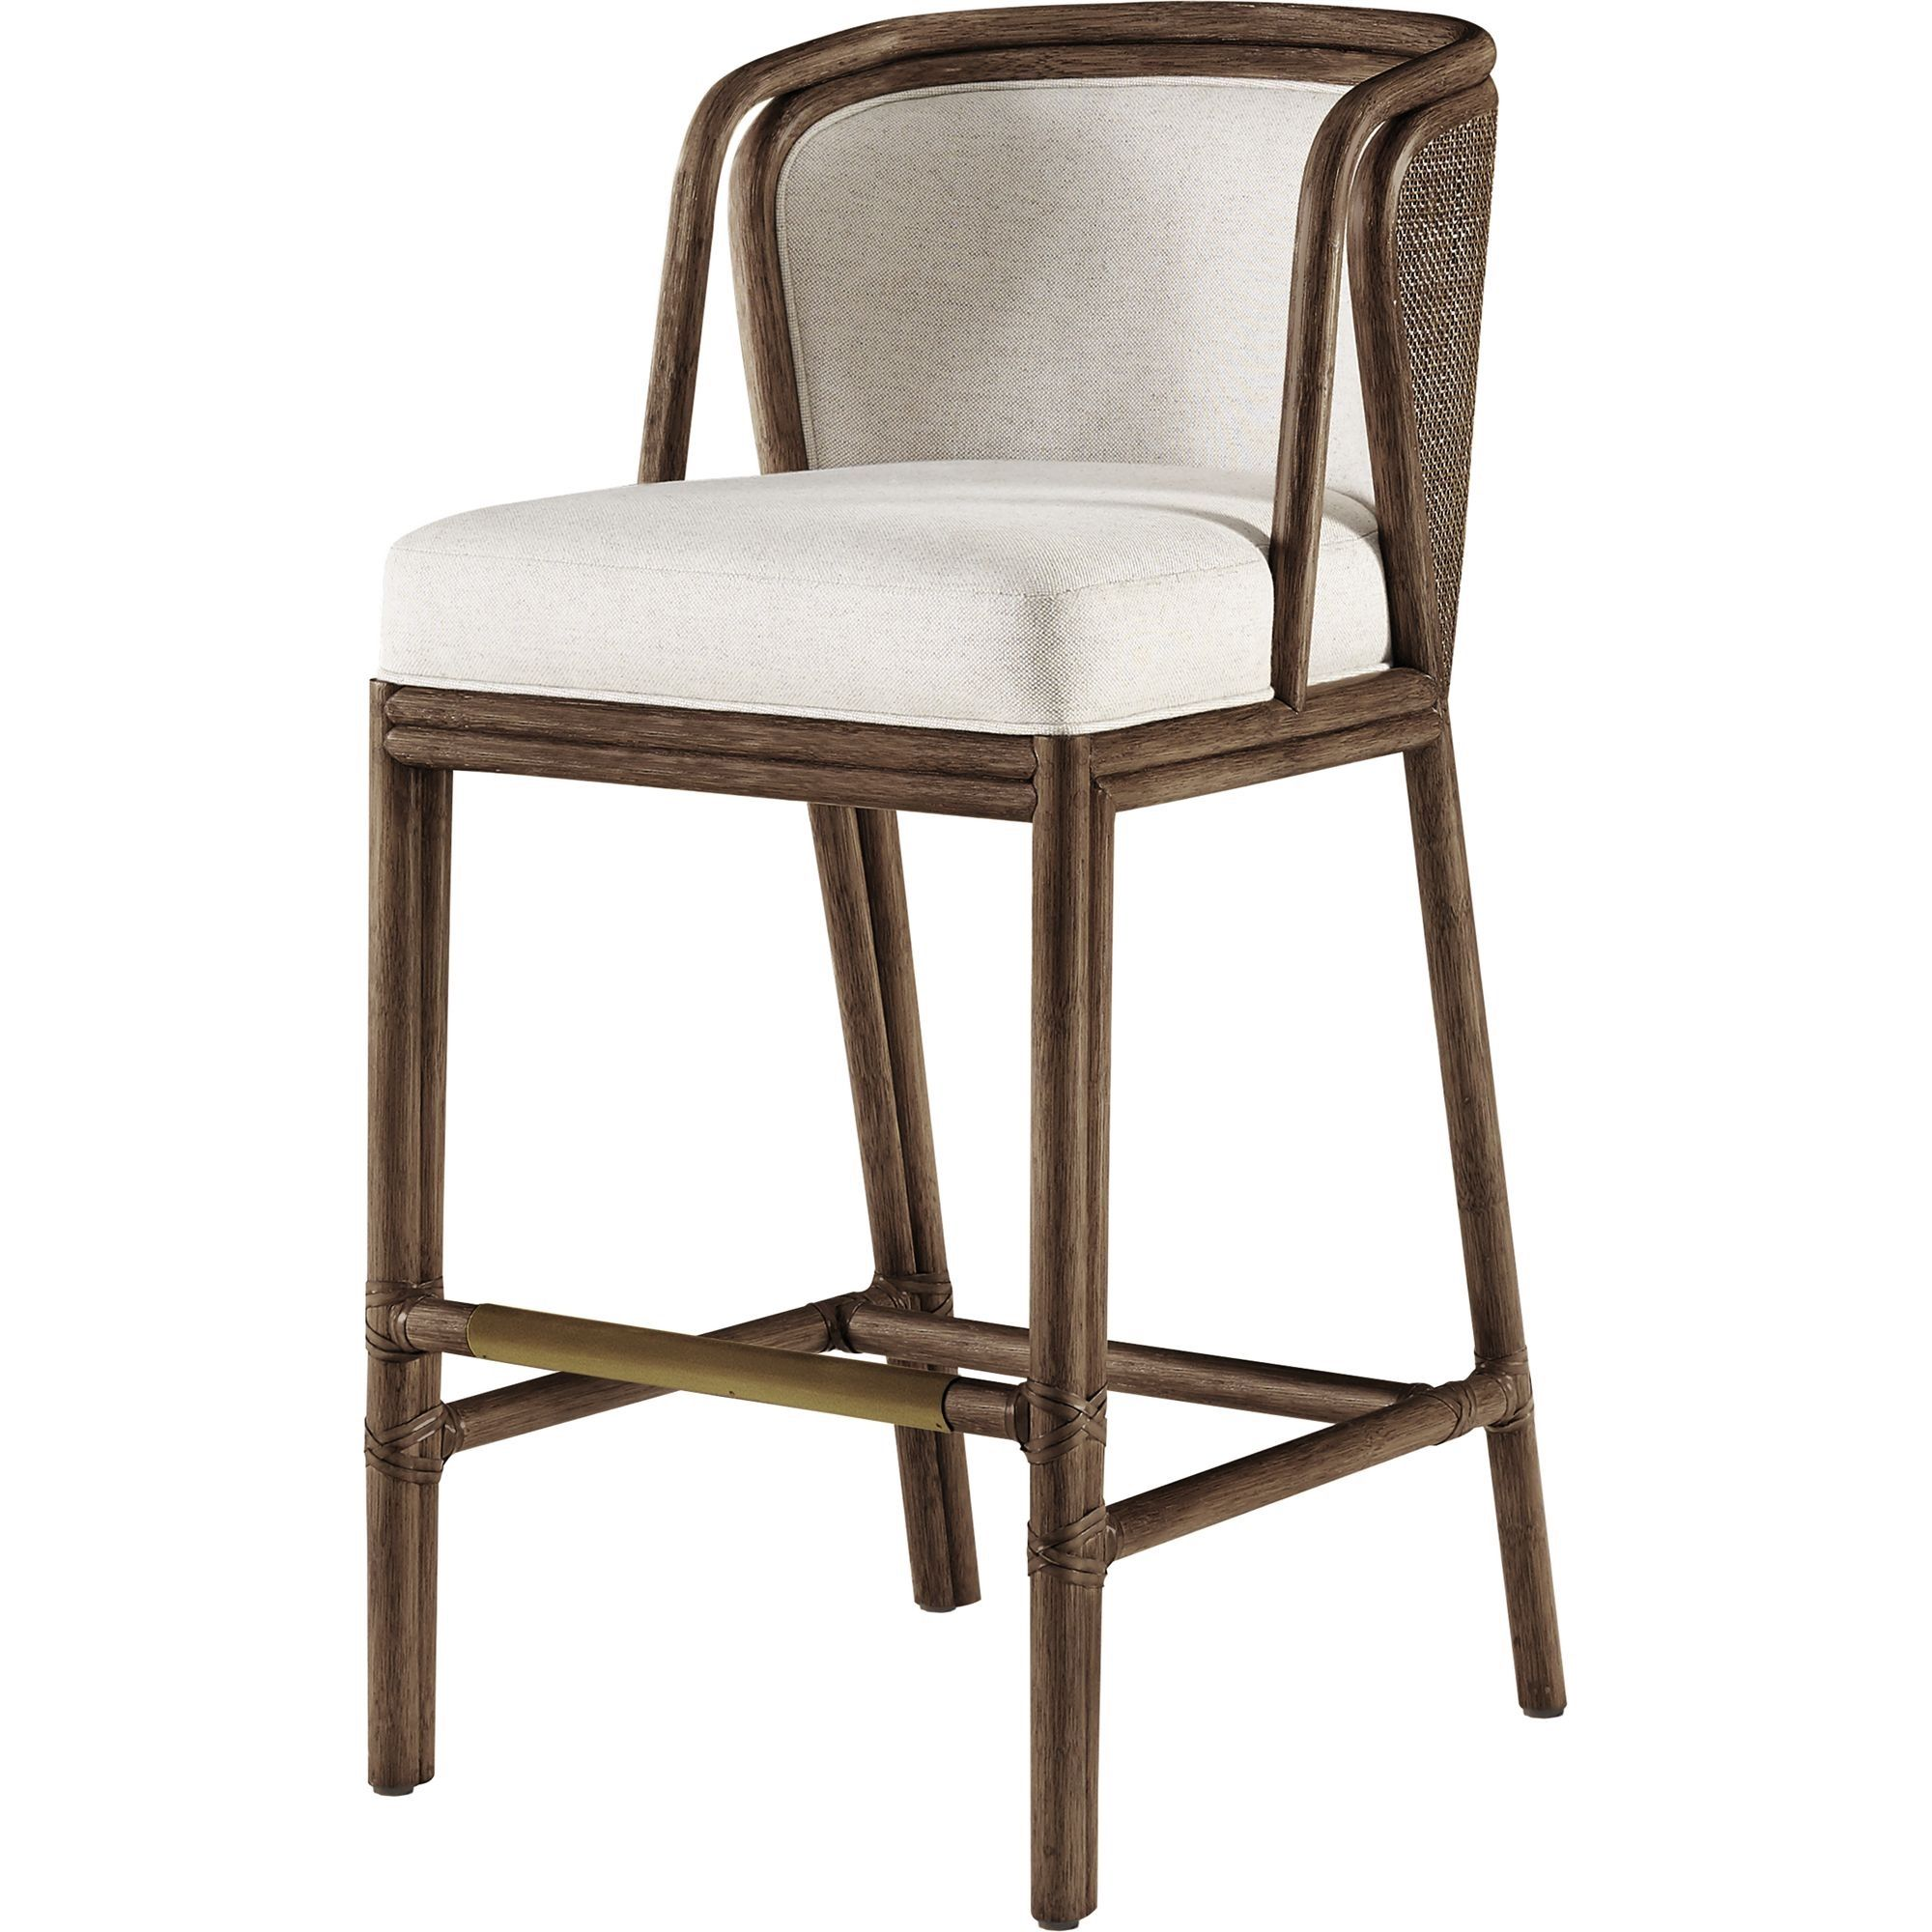 Buy Barbara Barry Ojai Counter Stool by McGuire Furniture Made